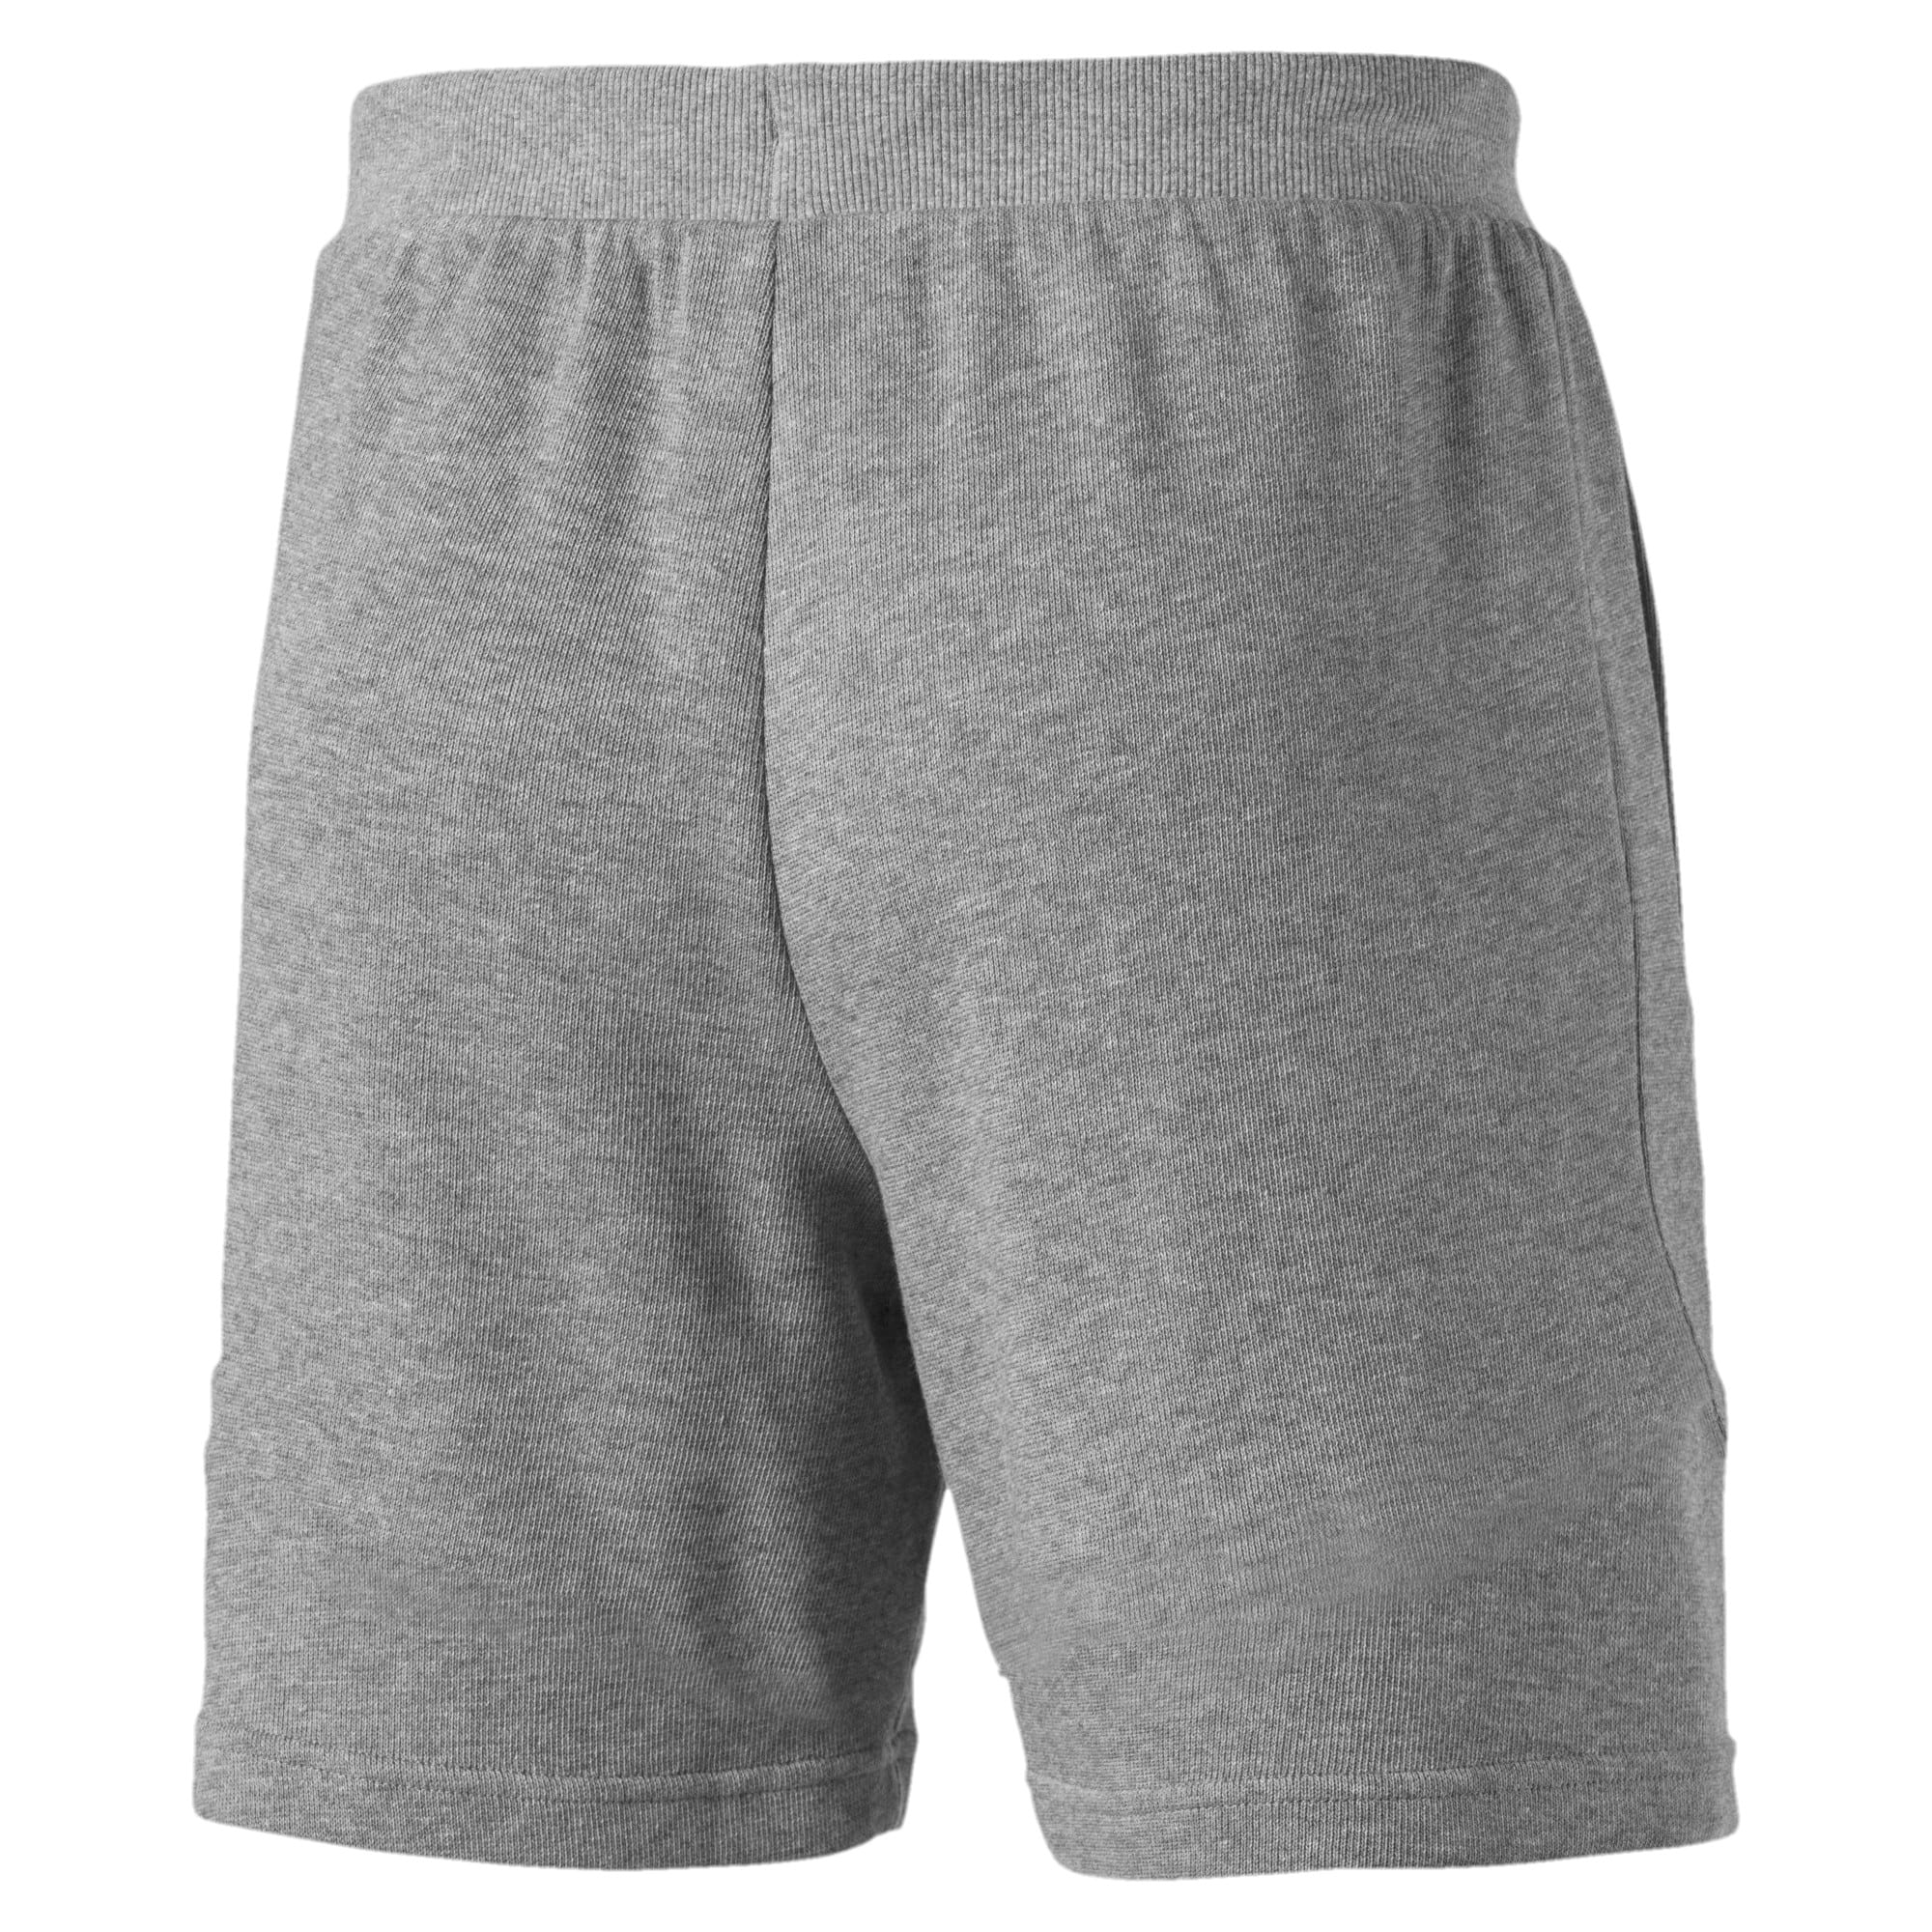 Thumbnail 3 of Scuderia Ferrari Men's Sweat Shorts, Medium Gray Heather, medium